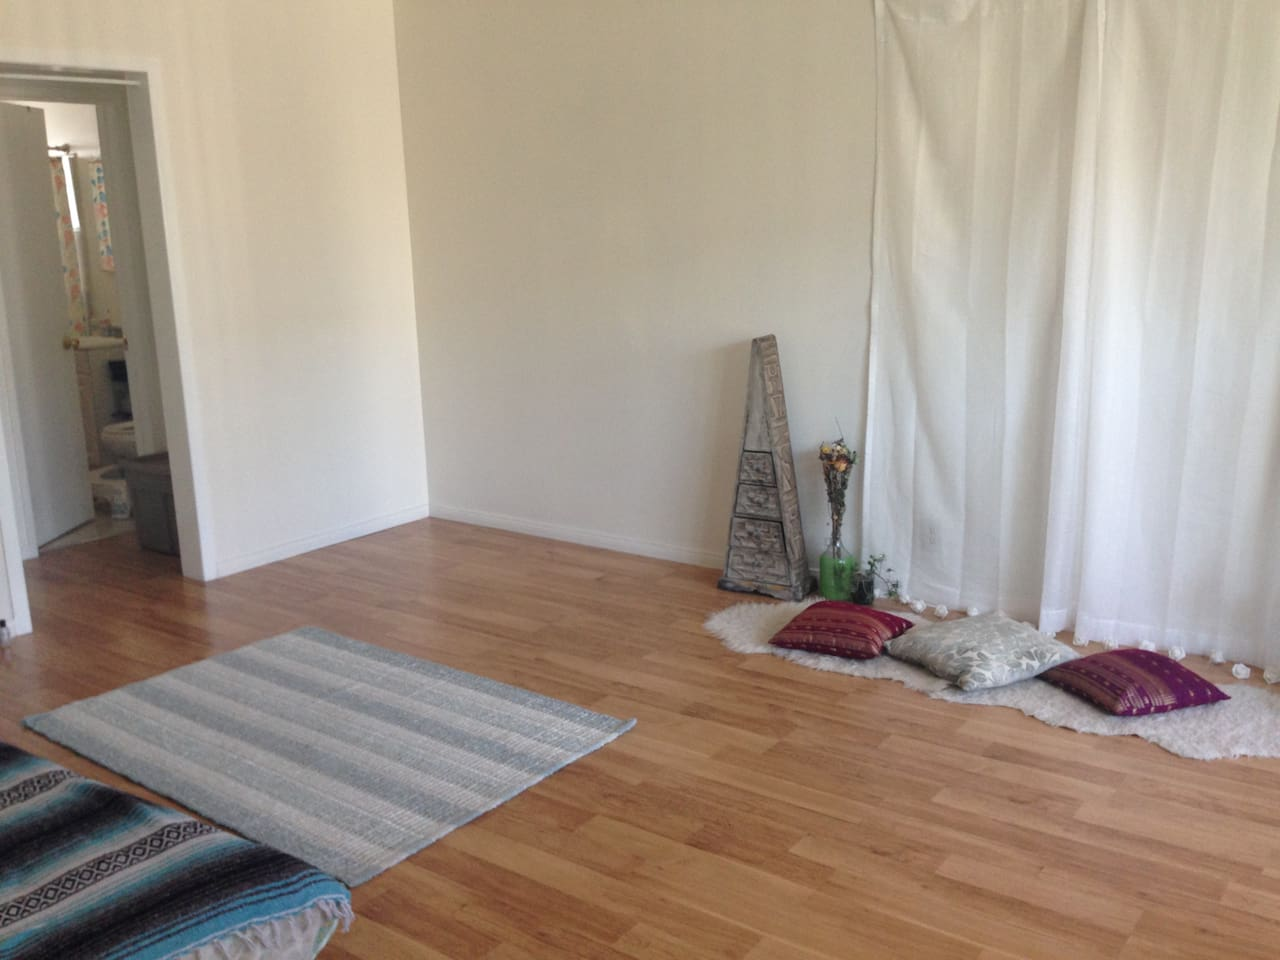 Picturesque living room and lounge spot. Great for yoga selfies.